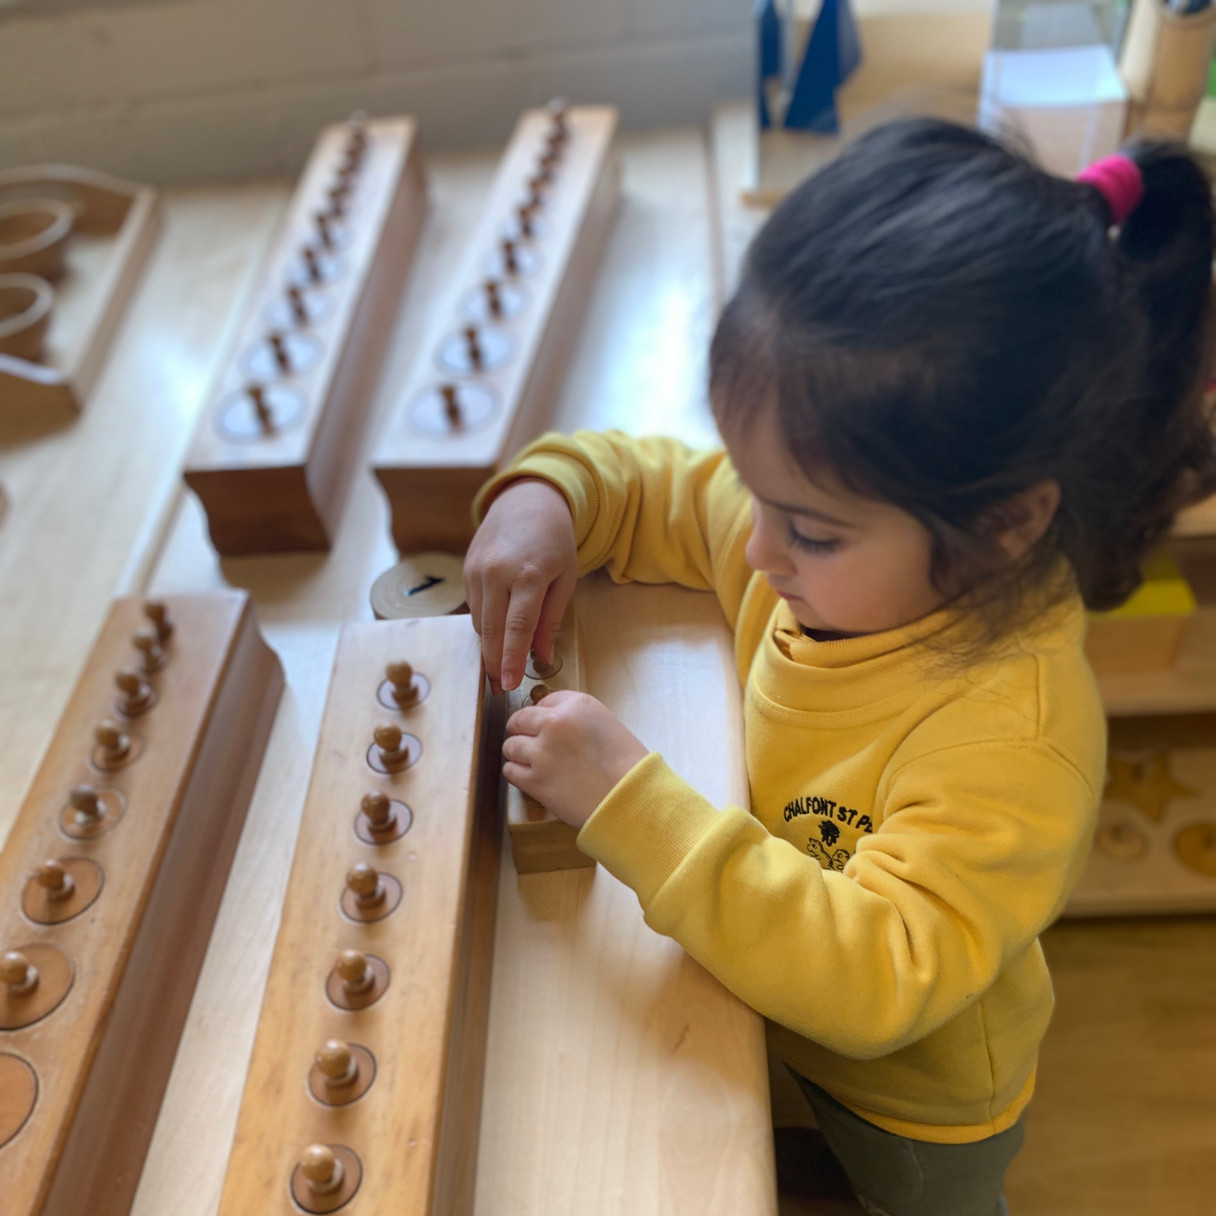 Knobbed cylinders, usinging fine motor skills to prepare the hand for writing practice as well as using visual perception to recognise size and dimension.